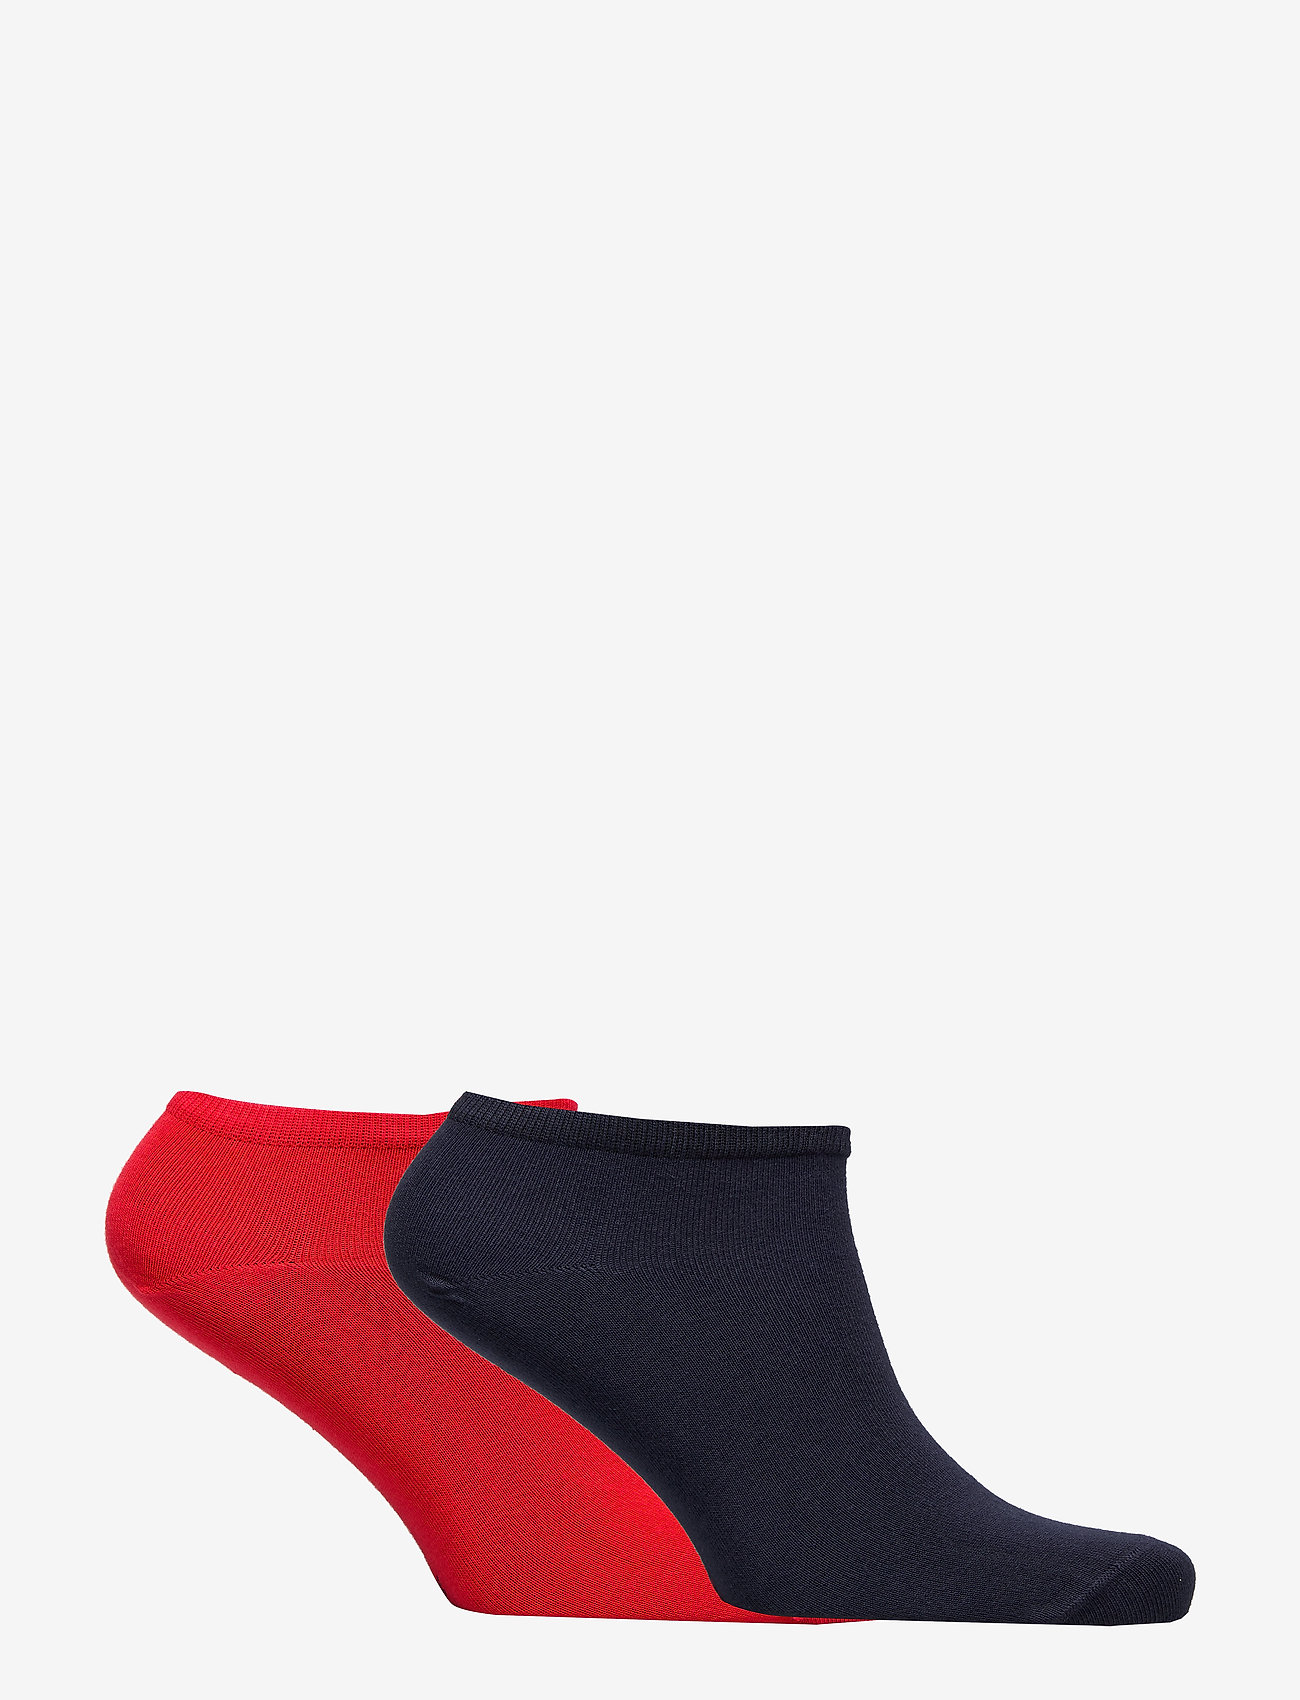 Tommy Hilfiger - TH WOMEN SNEAKER 2P - footies - tommy red - 1